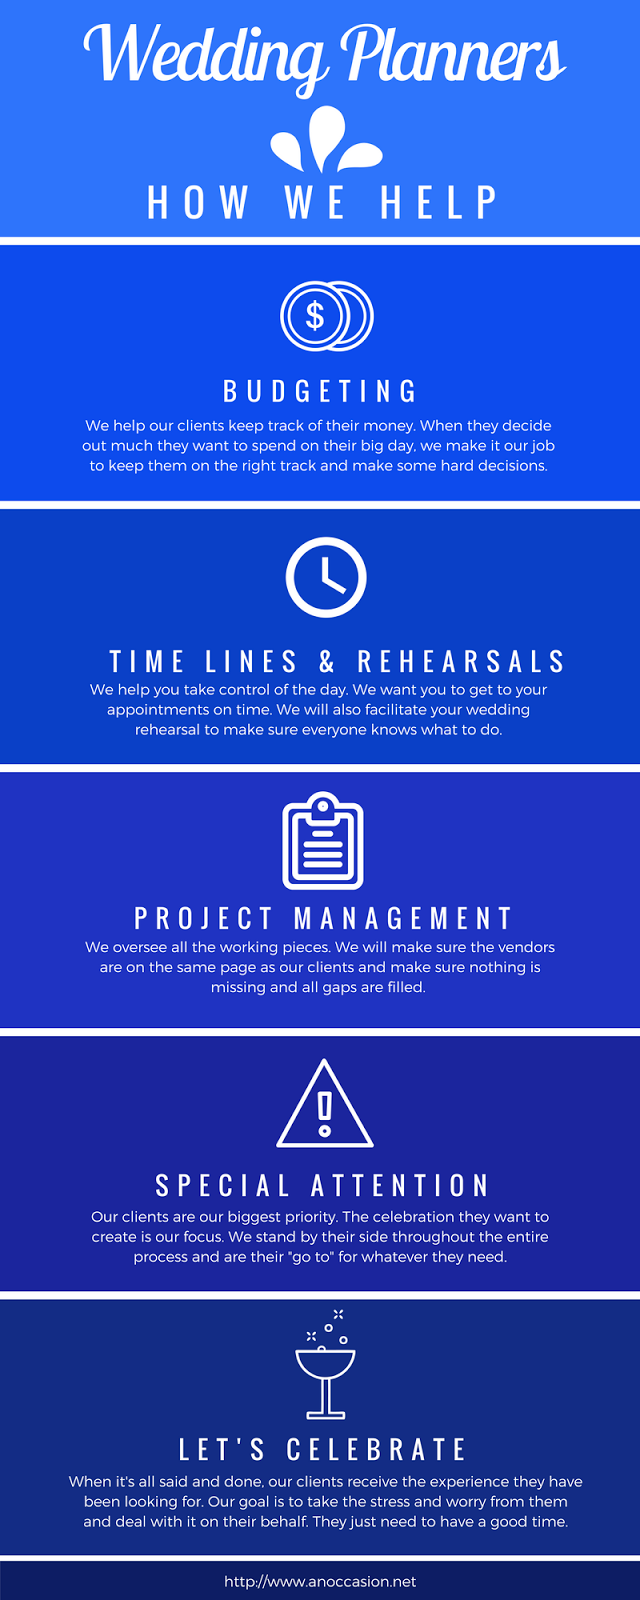 The Cousin Who Said Would Take Your Pictures Doesnt Have Professional Equipment Check Out Our Infograph Below And See Just What All We Can Offer You